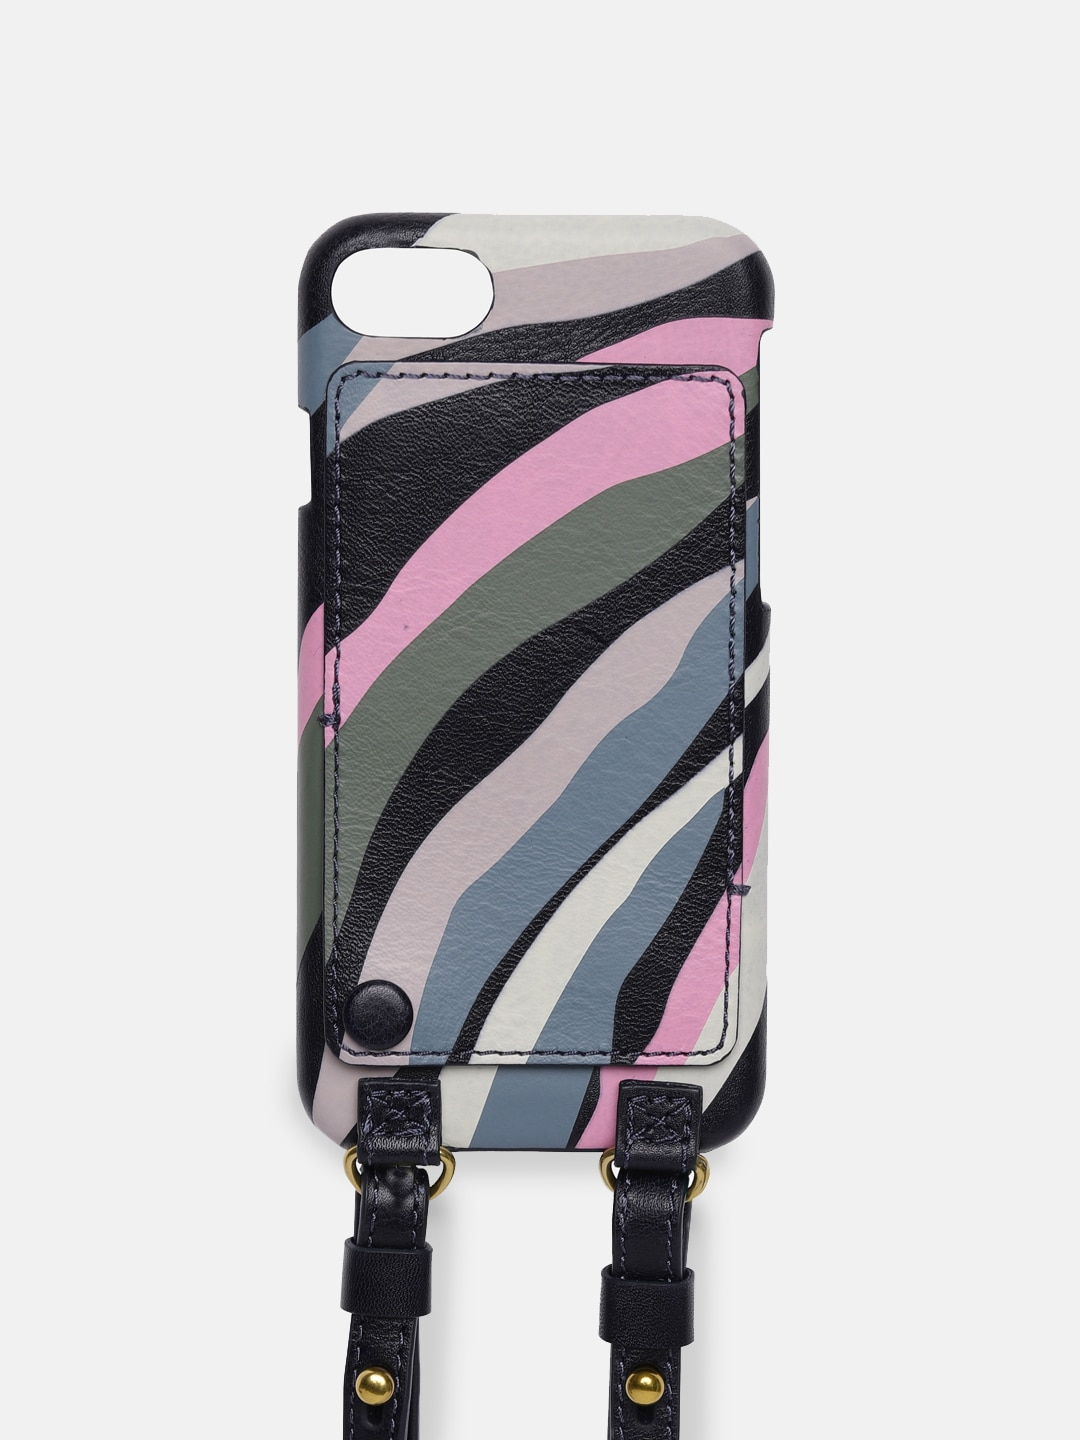 a3182c853ee0 Mobile Phone Cases - Buy Mobile Phone Cases Online - Myntra